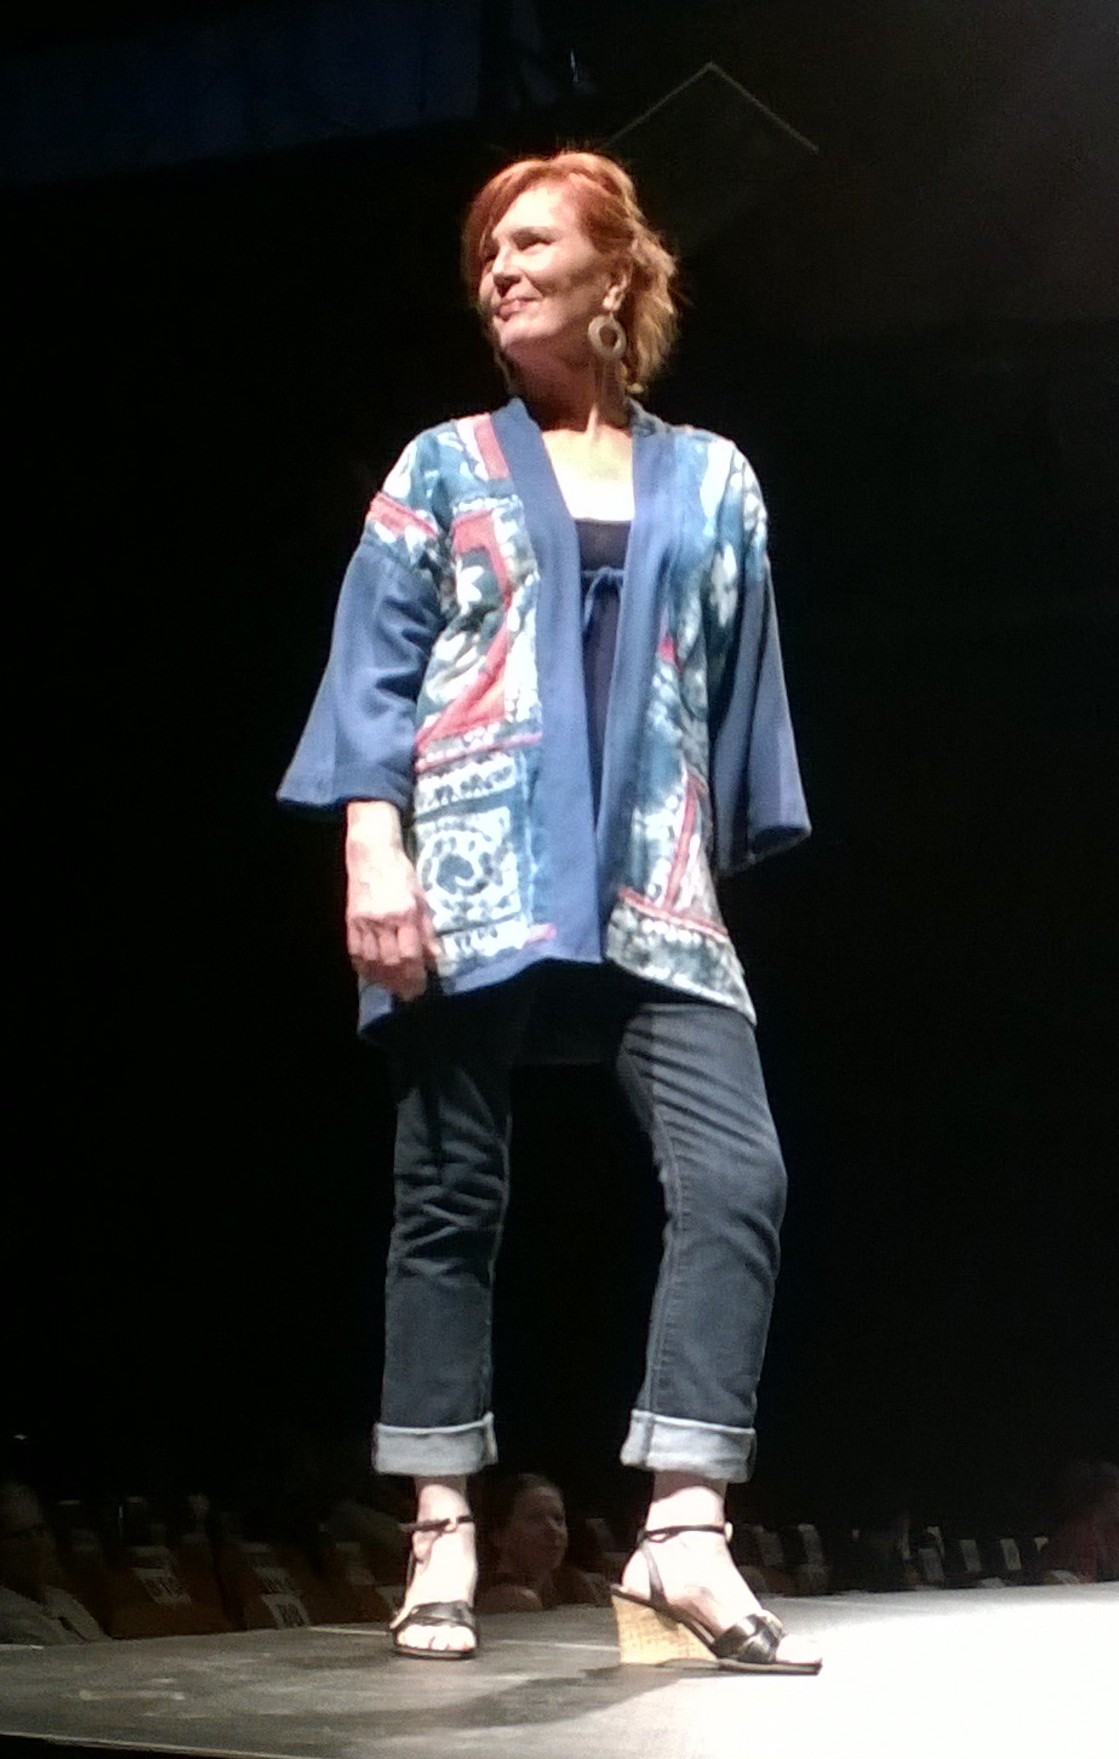 Shibori Jacket  2016 Diana Gipson  Port Townsend dianaoutdoors@att.net  Diana has transformed coffee bean bags, plastic construction fencing and silk into WAS runway-ready looks.  Traditional Japanese shibori designs were hand-stitched into silk, dyed by the artist and hand-appliqued onto a silk jacket to create this lively garment ideal for summer wear.  Model: Jan Burr